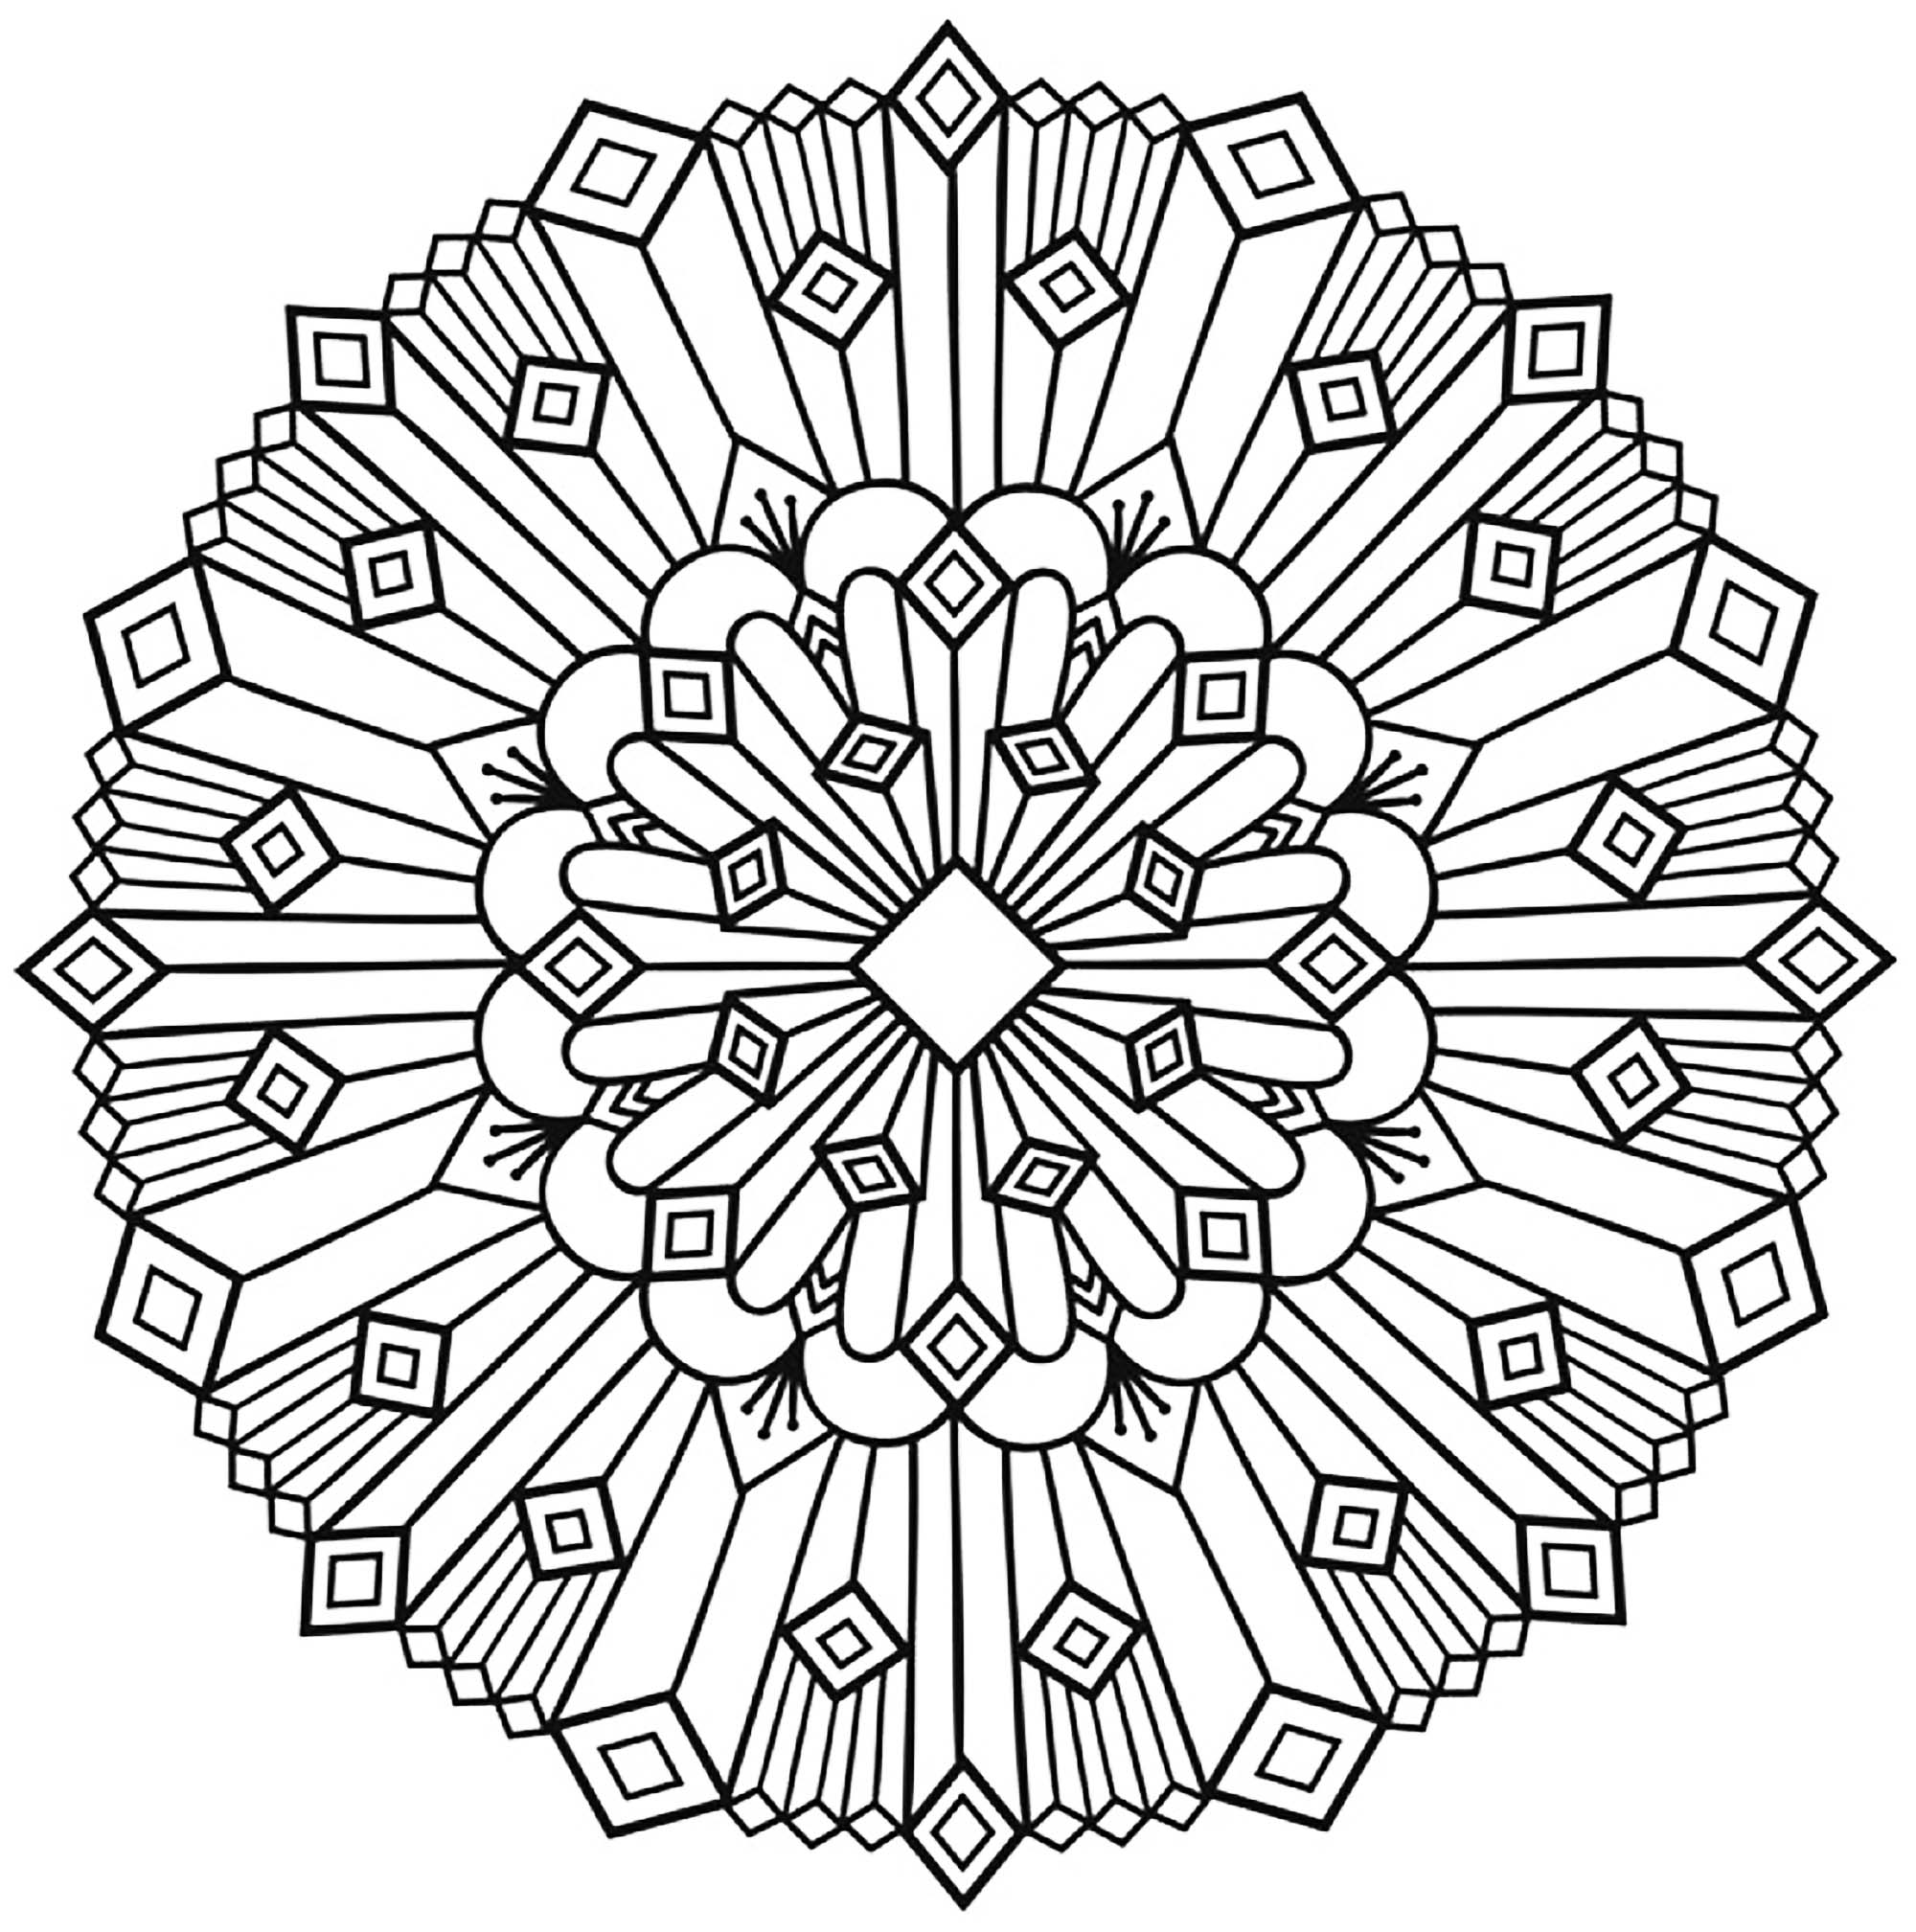 simple mandala coloring pages - mandala art deco simple simple mandalas 100 mandalas